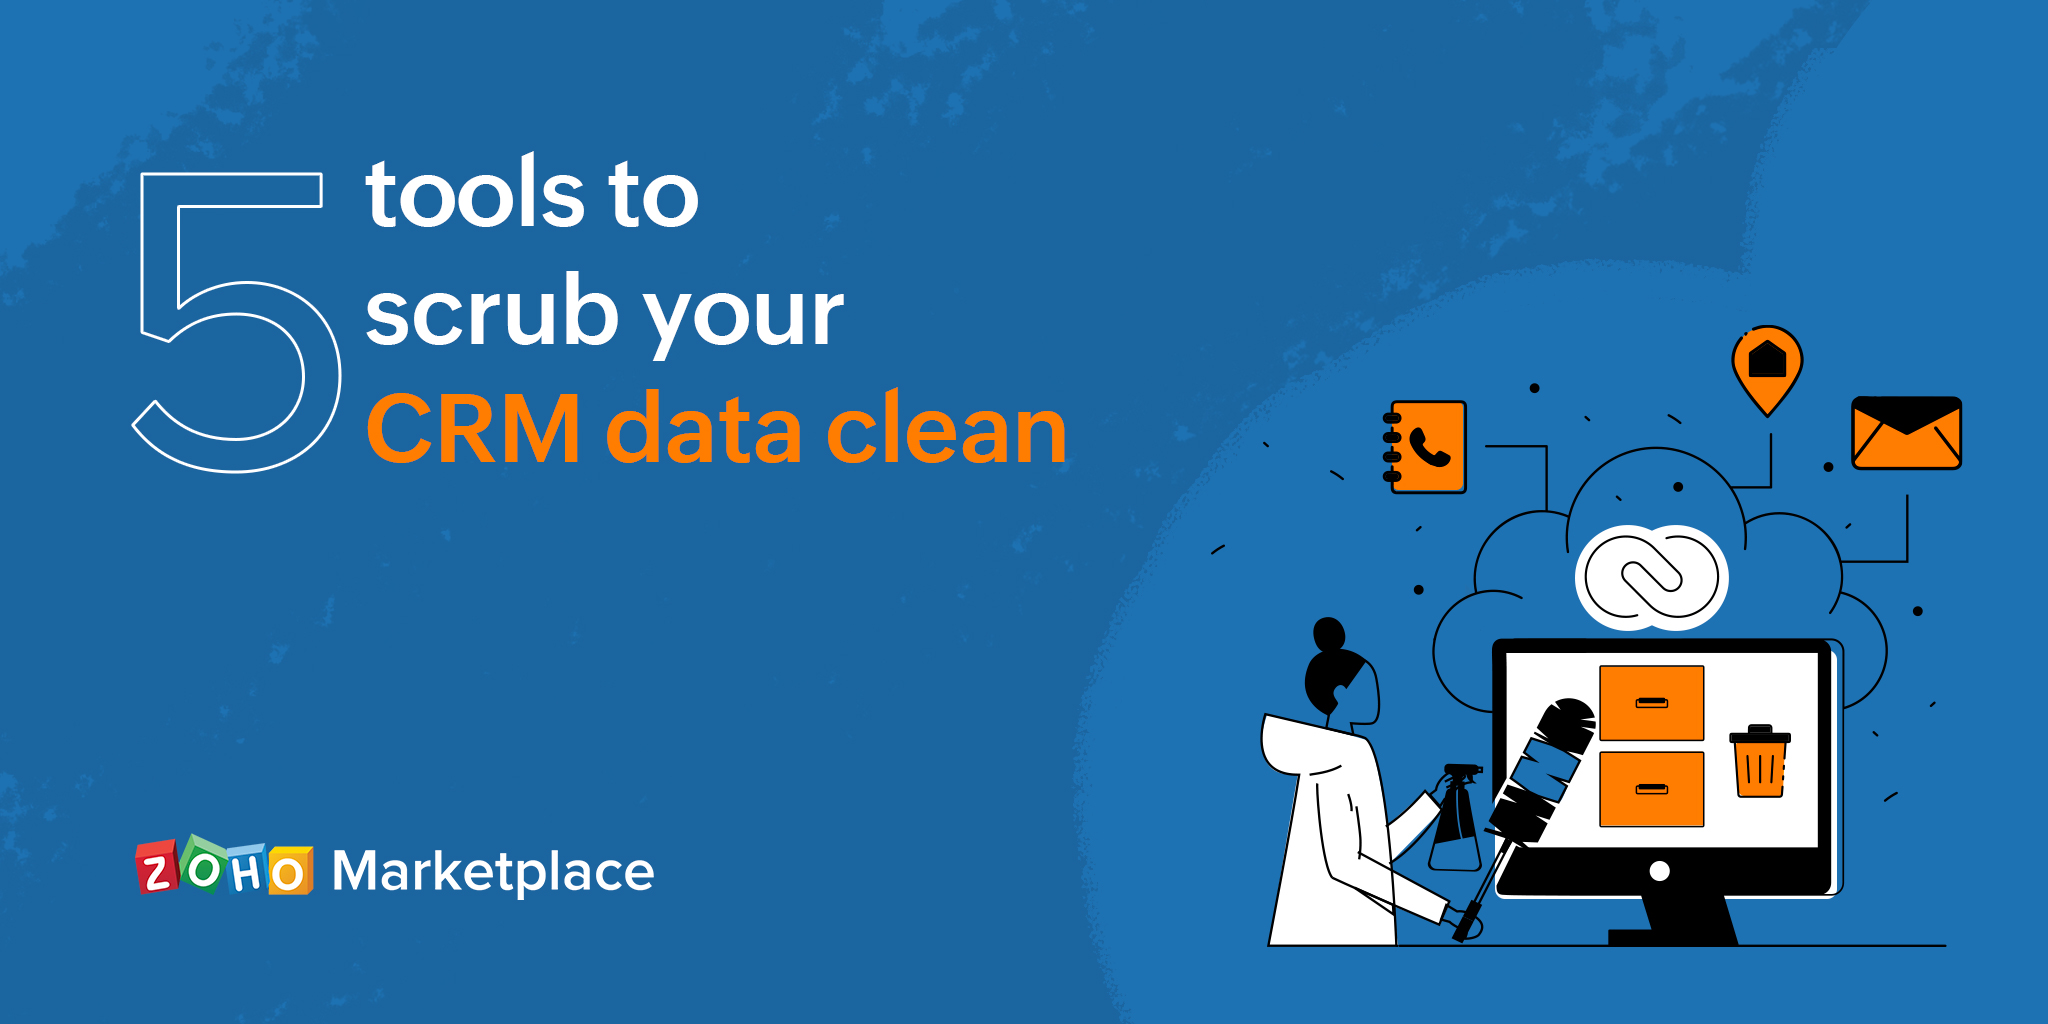 5 tools to scrub your CRM data clean